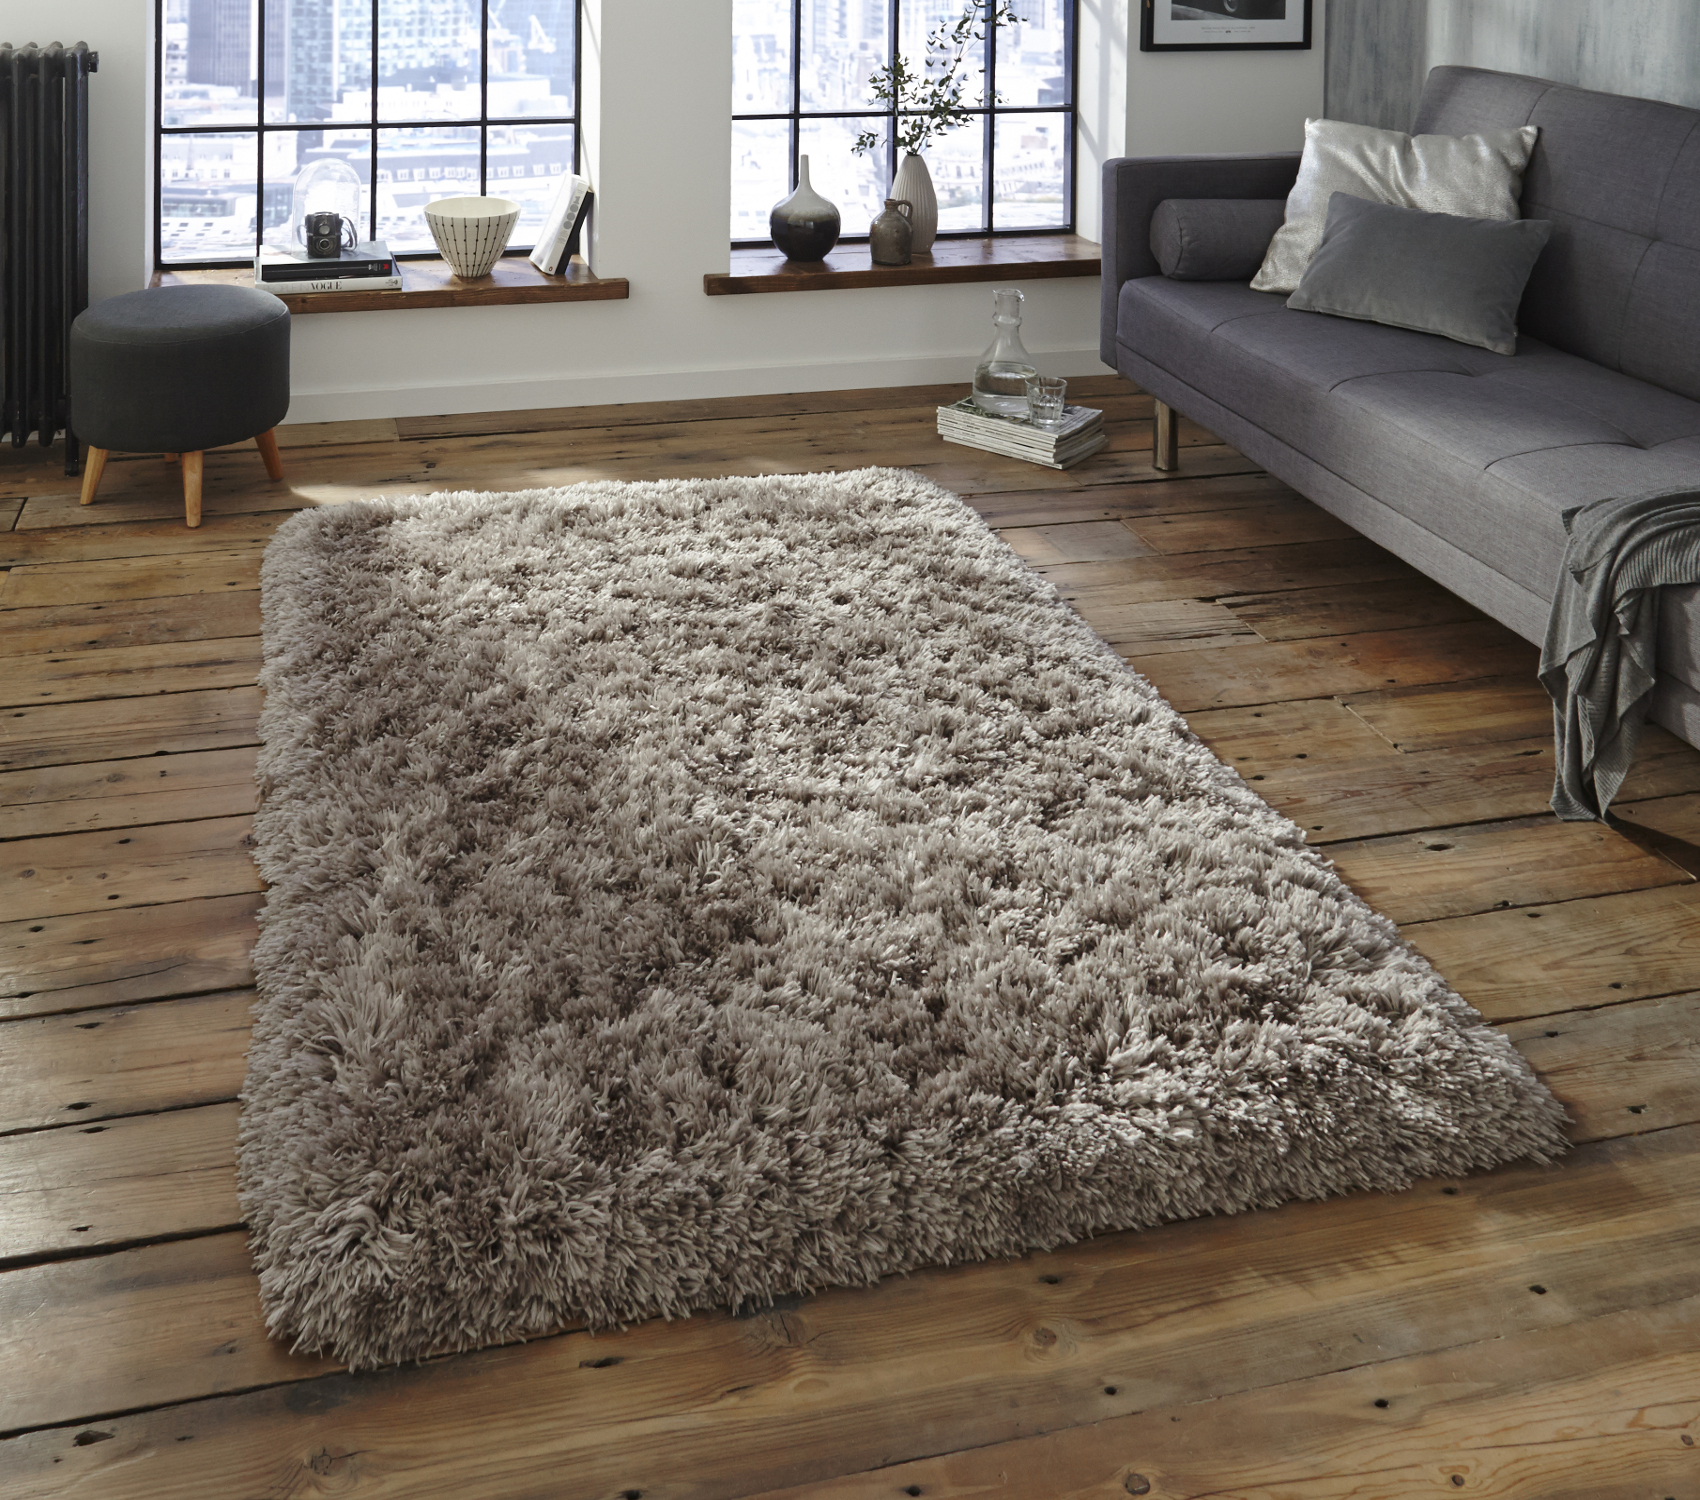 Super Soft Hand Tufted Shaggy Rug Polar 8 5cm Pile 100